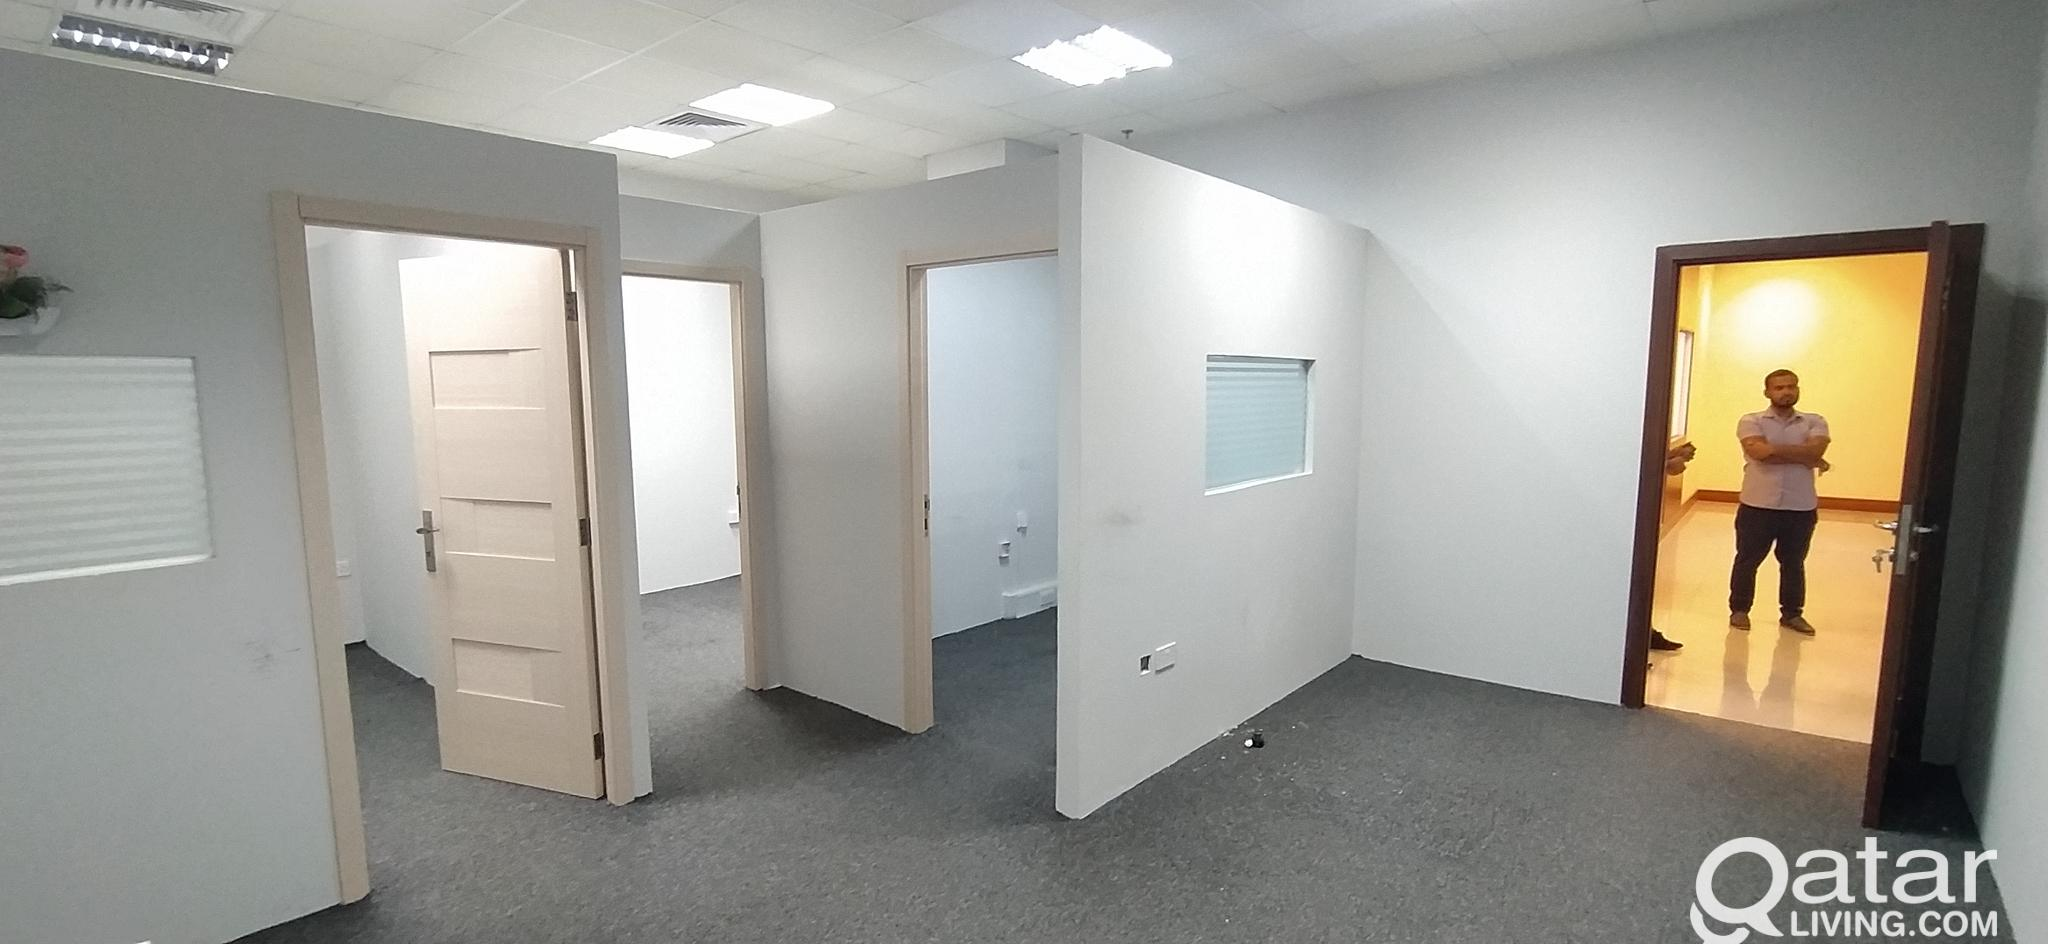 1 MONTH FREE ! Small individual office in old airp